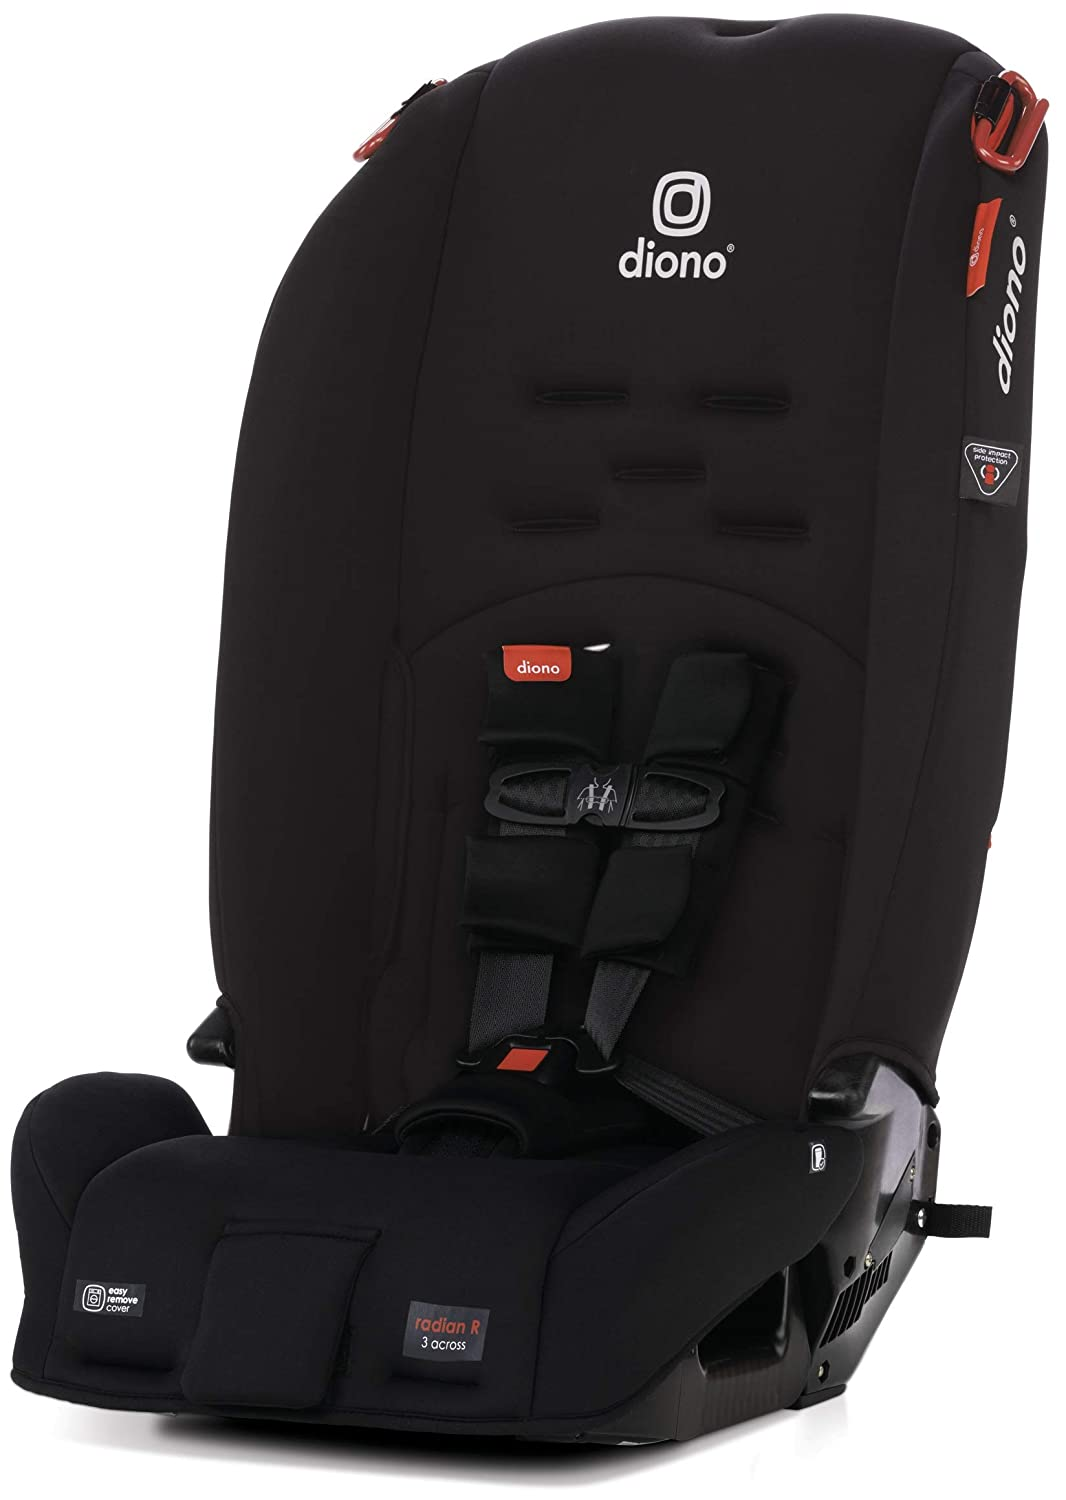 Diono 2020 Radian 3R 3 in 1 Convertible – Best 10 years 1 Booster Seat with 5 point Harness